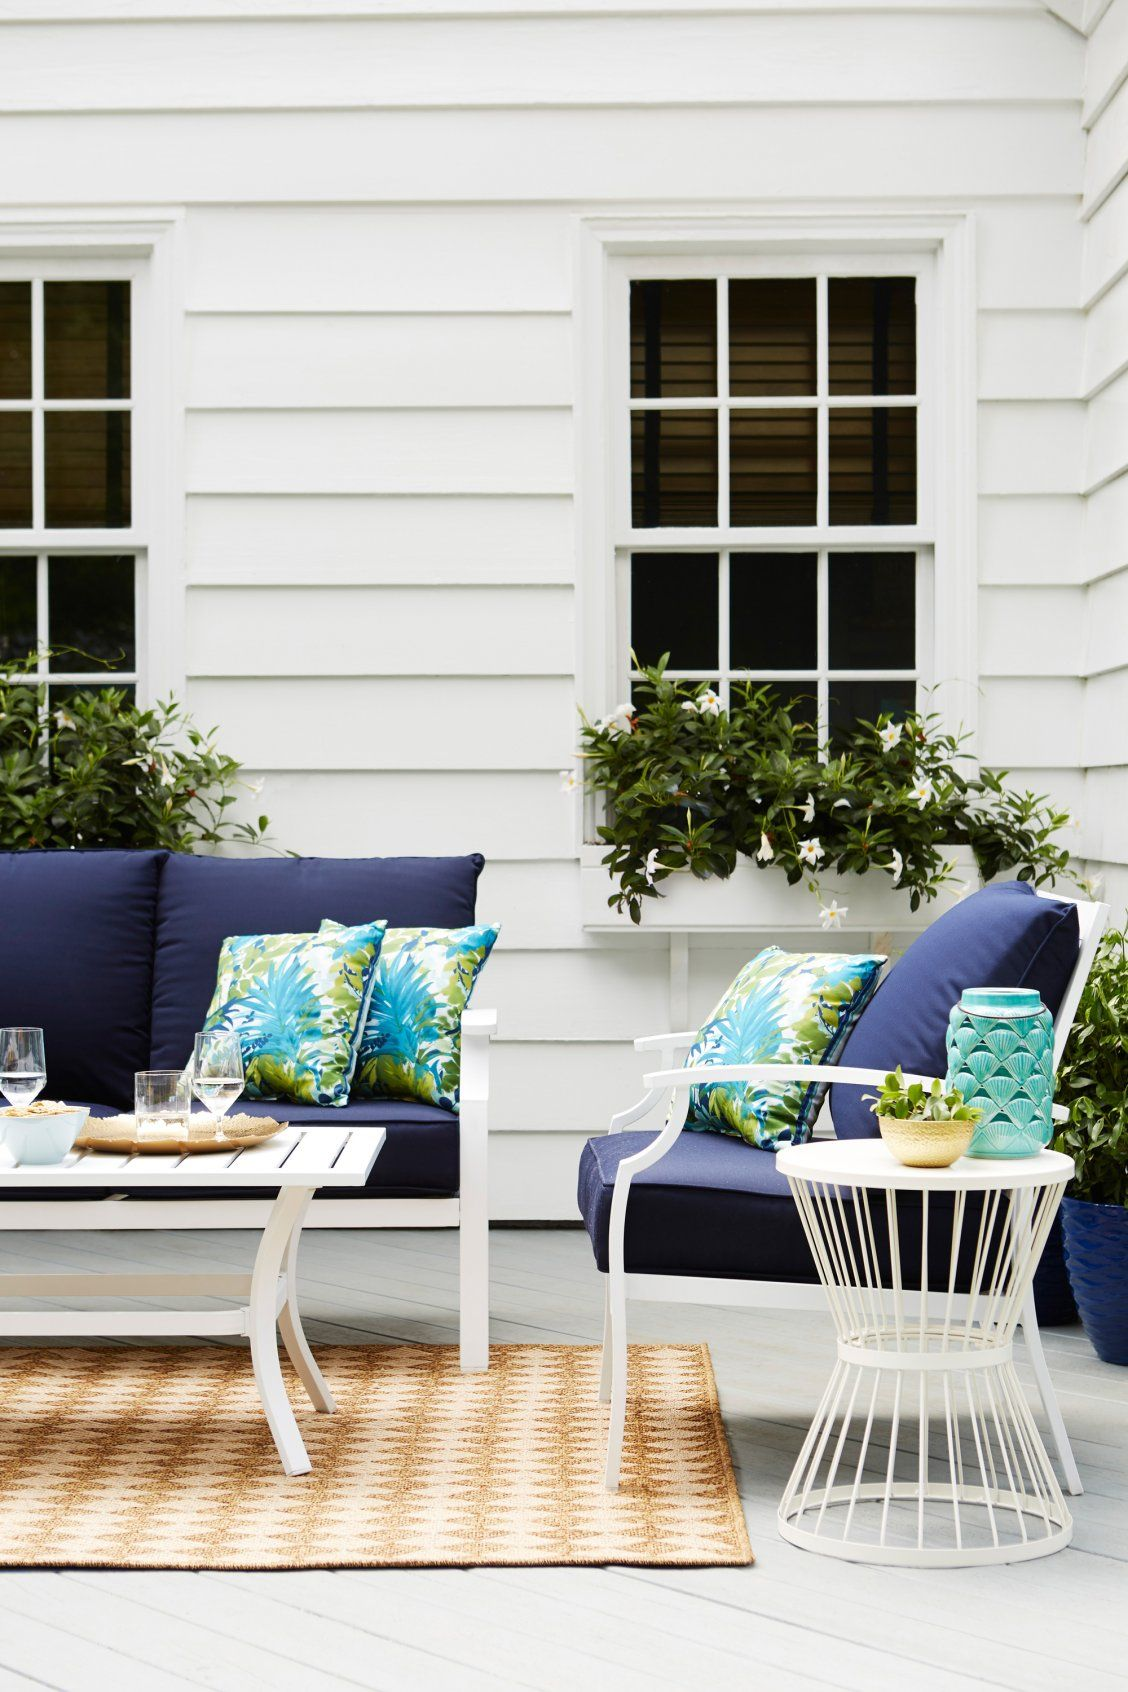 Set Sail For Style With A Nautical Inspired Outdoor Patio Set Featuring Crisp White Fram Blue Patio Furniture White Patio Furniture Patio Furniture Collection